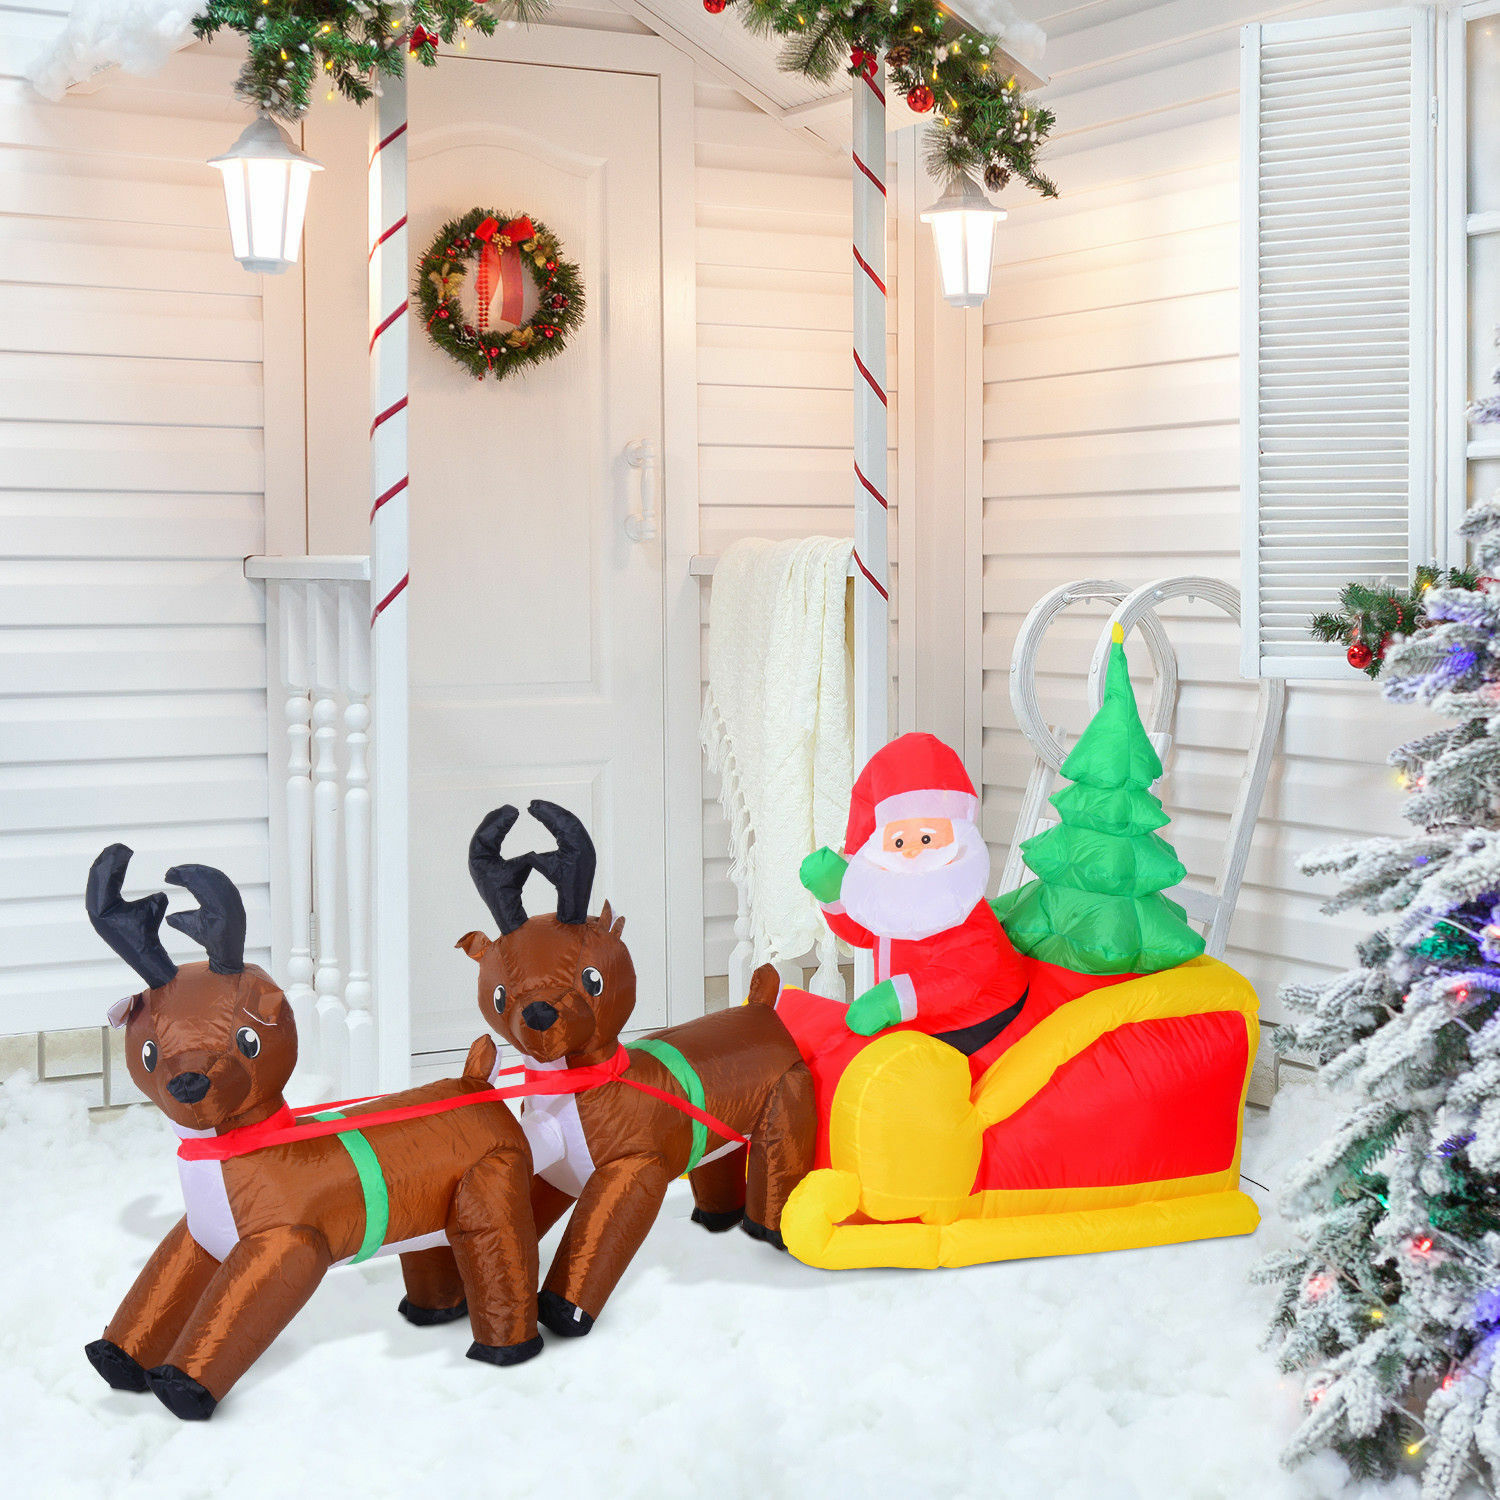 7ft Inflatable Christmas Santa Claus & Reindeerlighted Airblown Yard ...